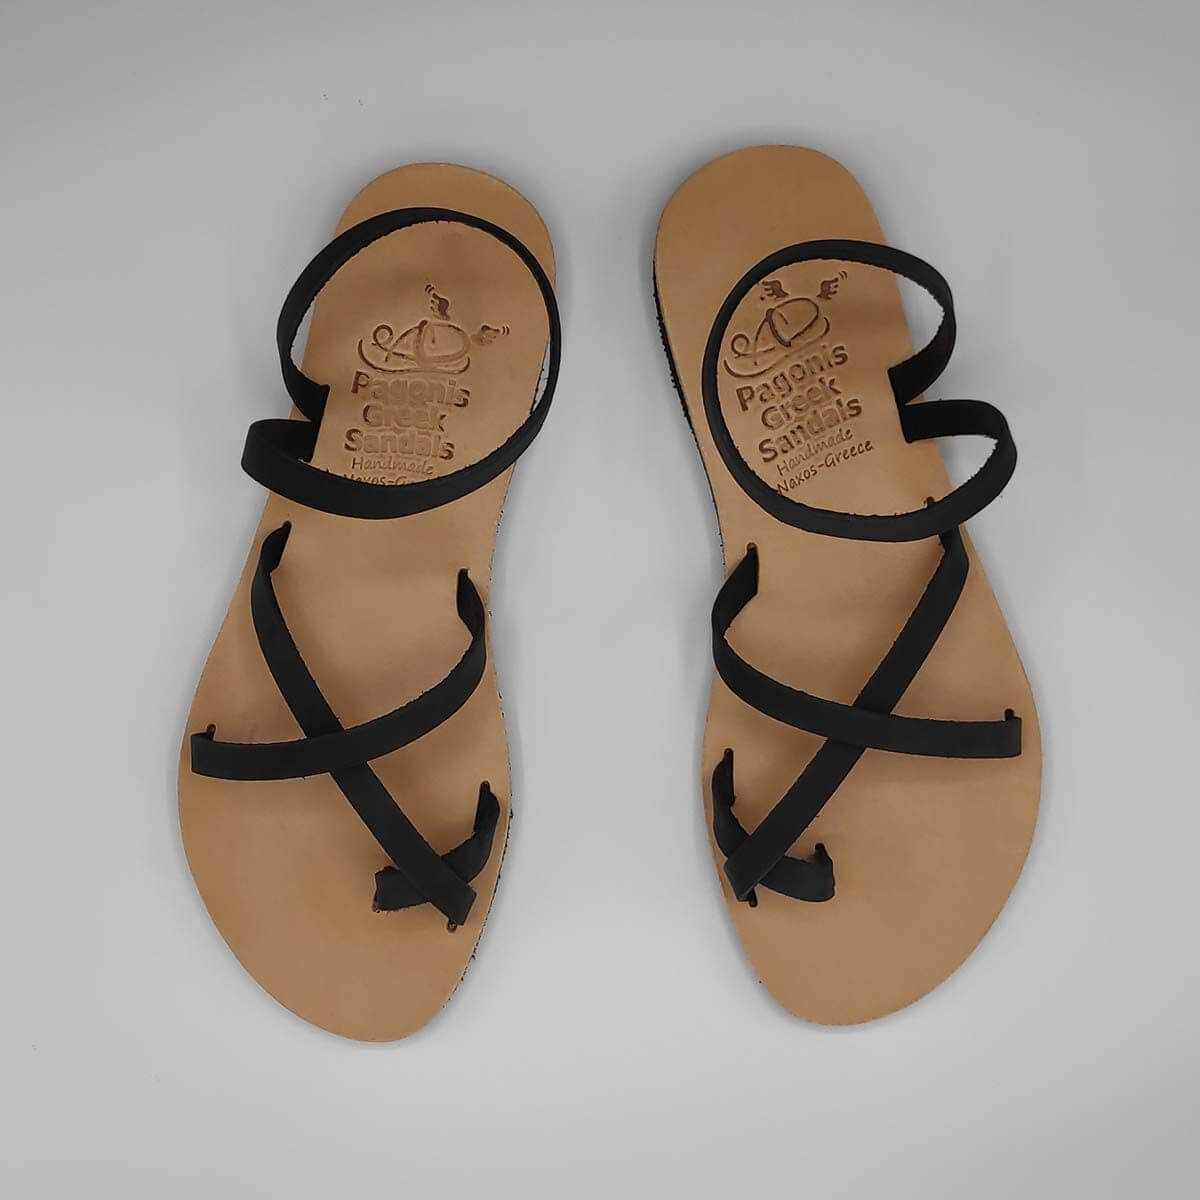 Black Leather Strappy Sandals with Toe Straps | Antiparos | Pagonis Greek Sandals